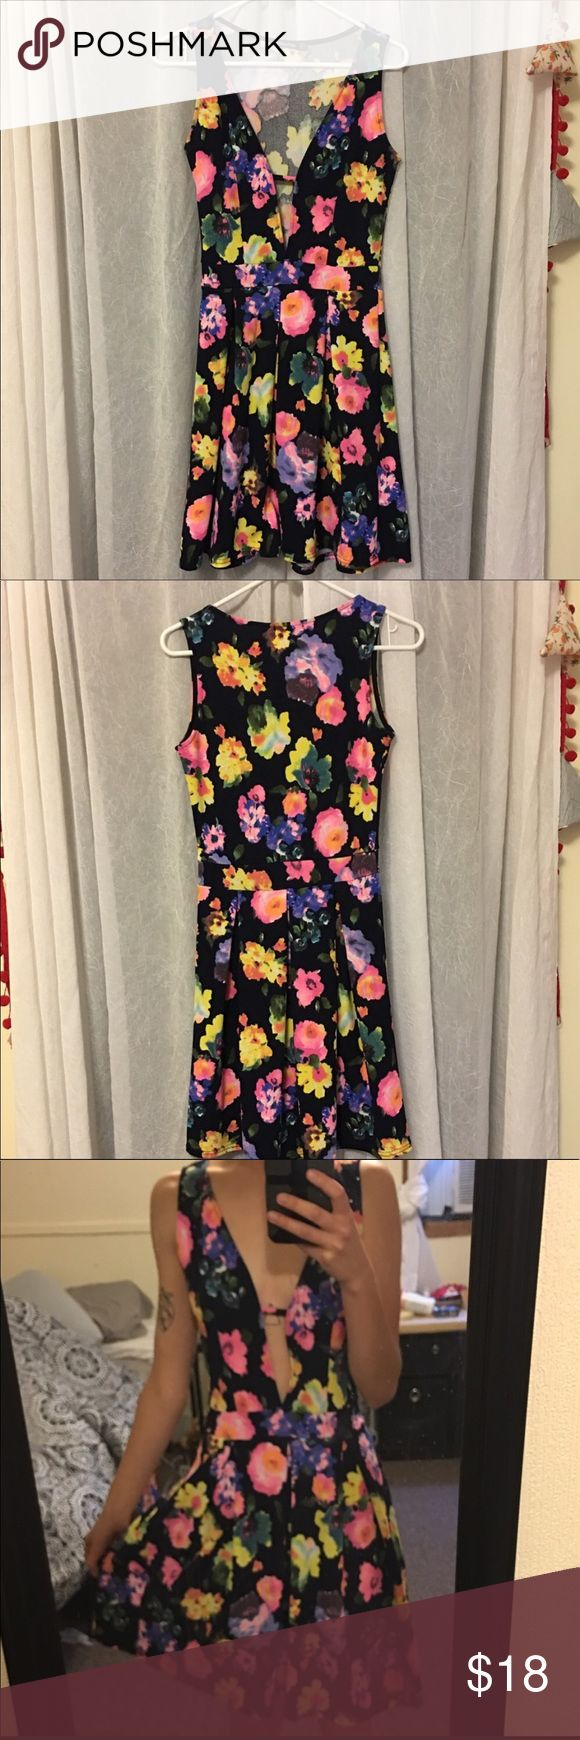 Floral Deep V Cut Out dress boohoo petite pleated Adorable dress with front cut out, pink yellow orange blue and purple flowers! From boohoo petite US size 4 UK 8. Only worn once excellent used condition. Cut out could easily be pinned for a more modest look. Approximately 34.5 inches from shoulder. The fabric had stretch and is beautifully textured! 💚 Boohoo Petite Dresses